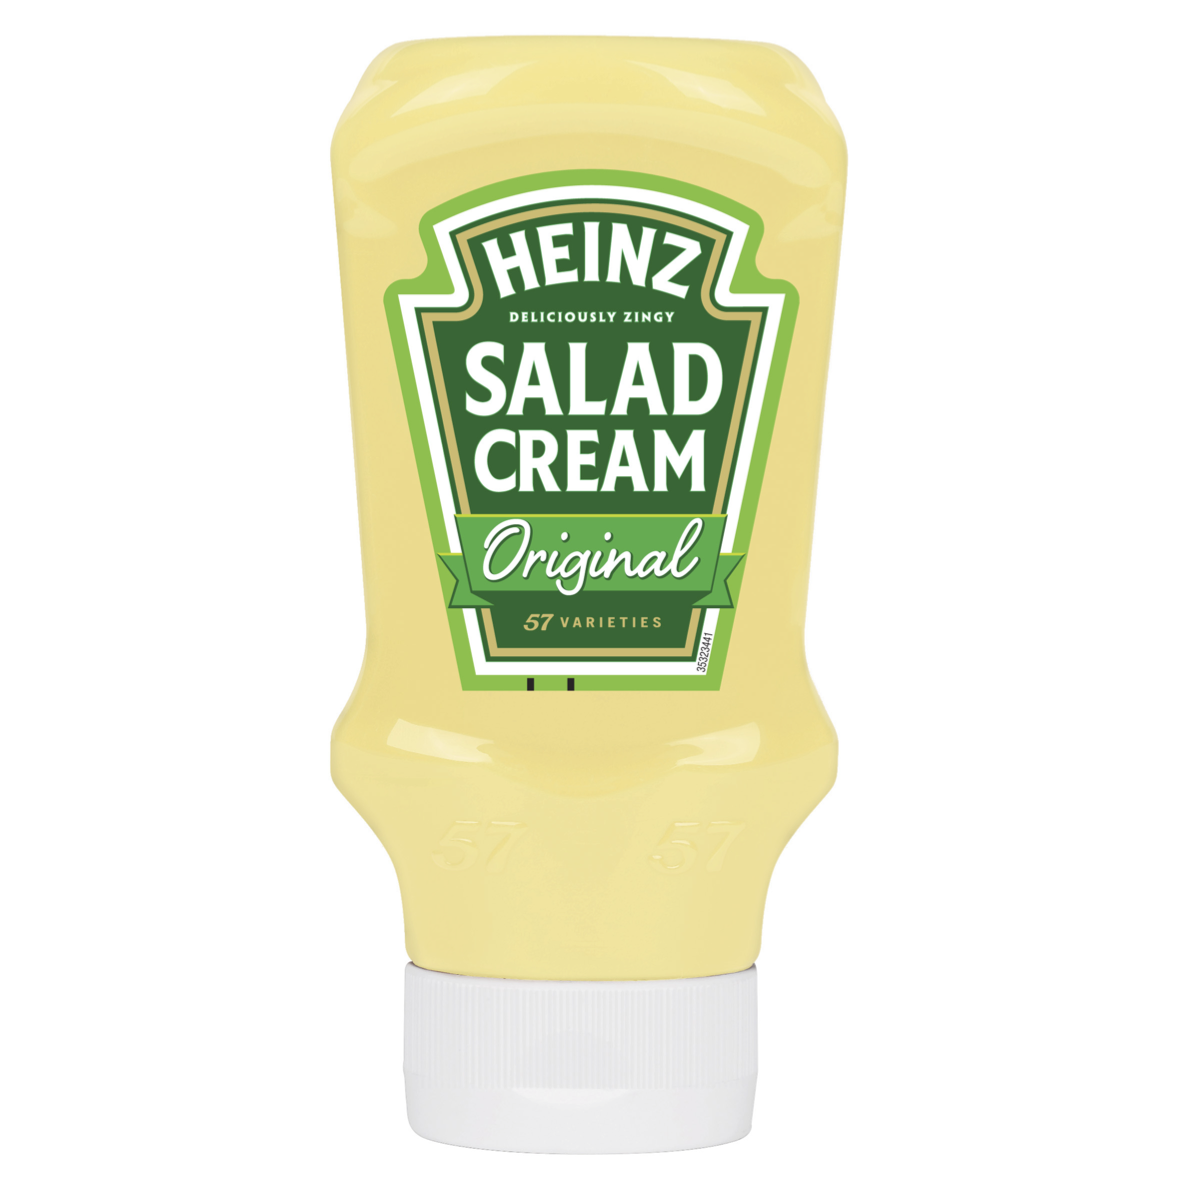 Photograph of 1 x 425g Heinz Salad Cream product